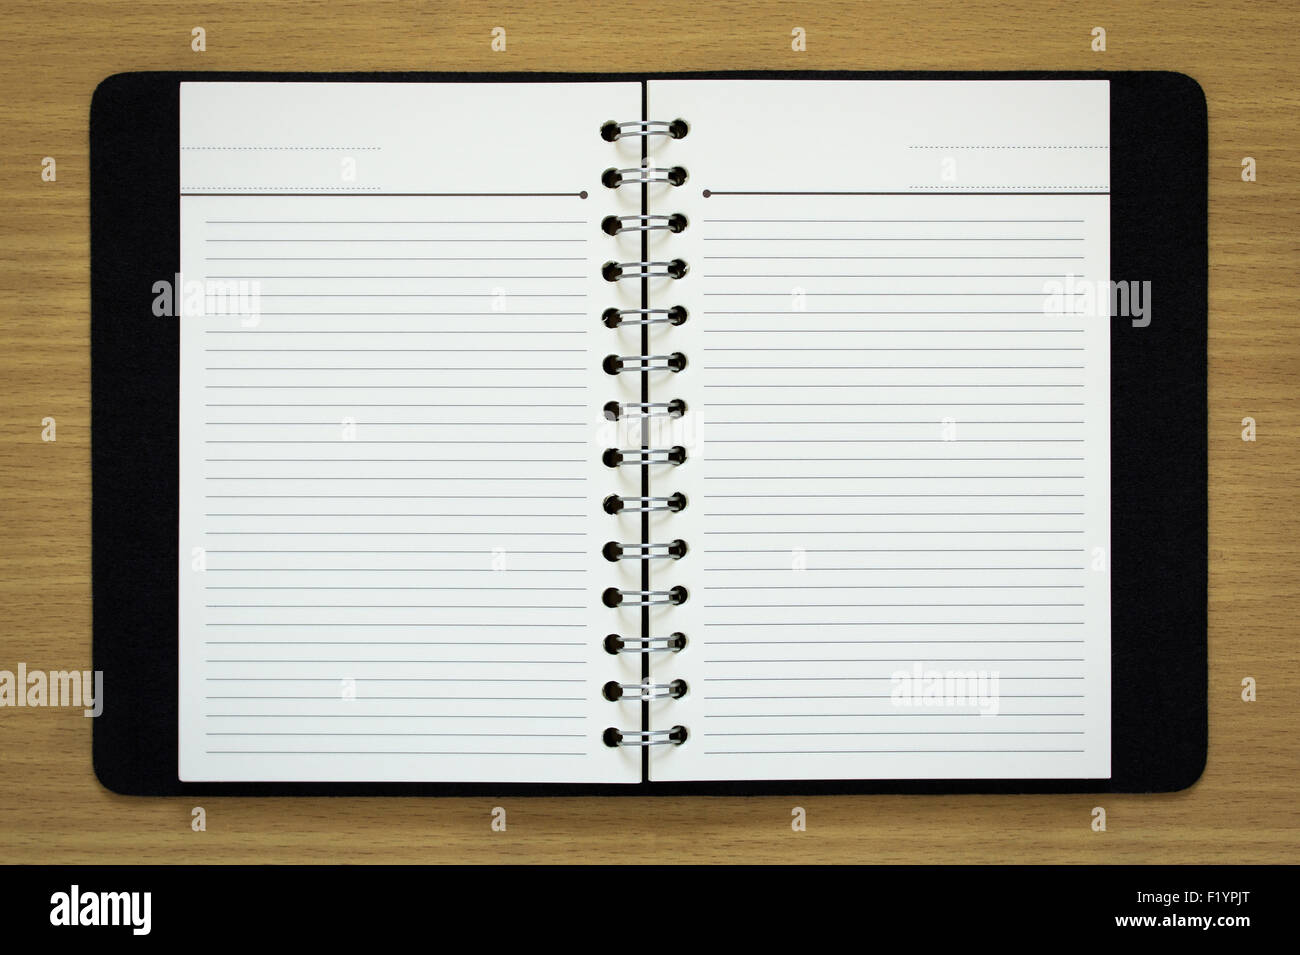 Book Bind Stock Photos & Book Bind Stock Images - Alamy